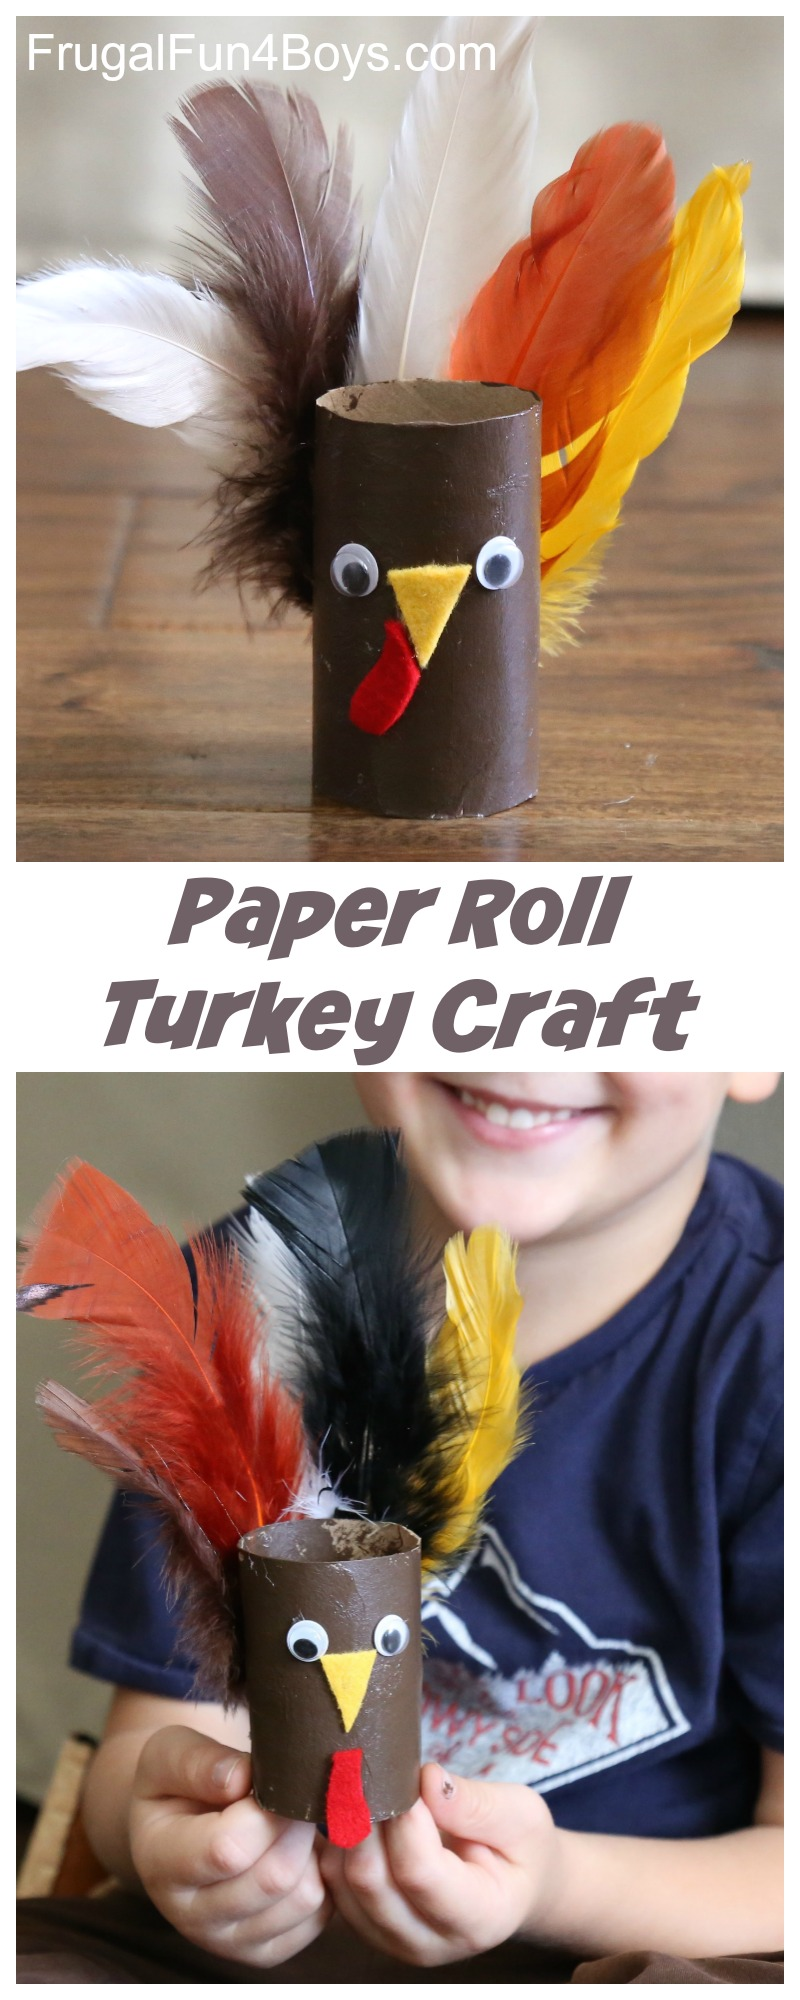 Paper Roll Turkey Craft for Kids